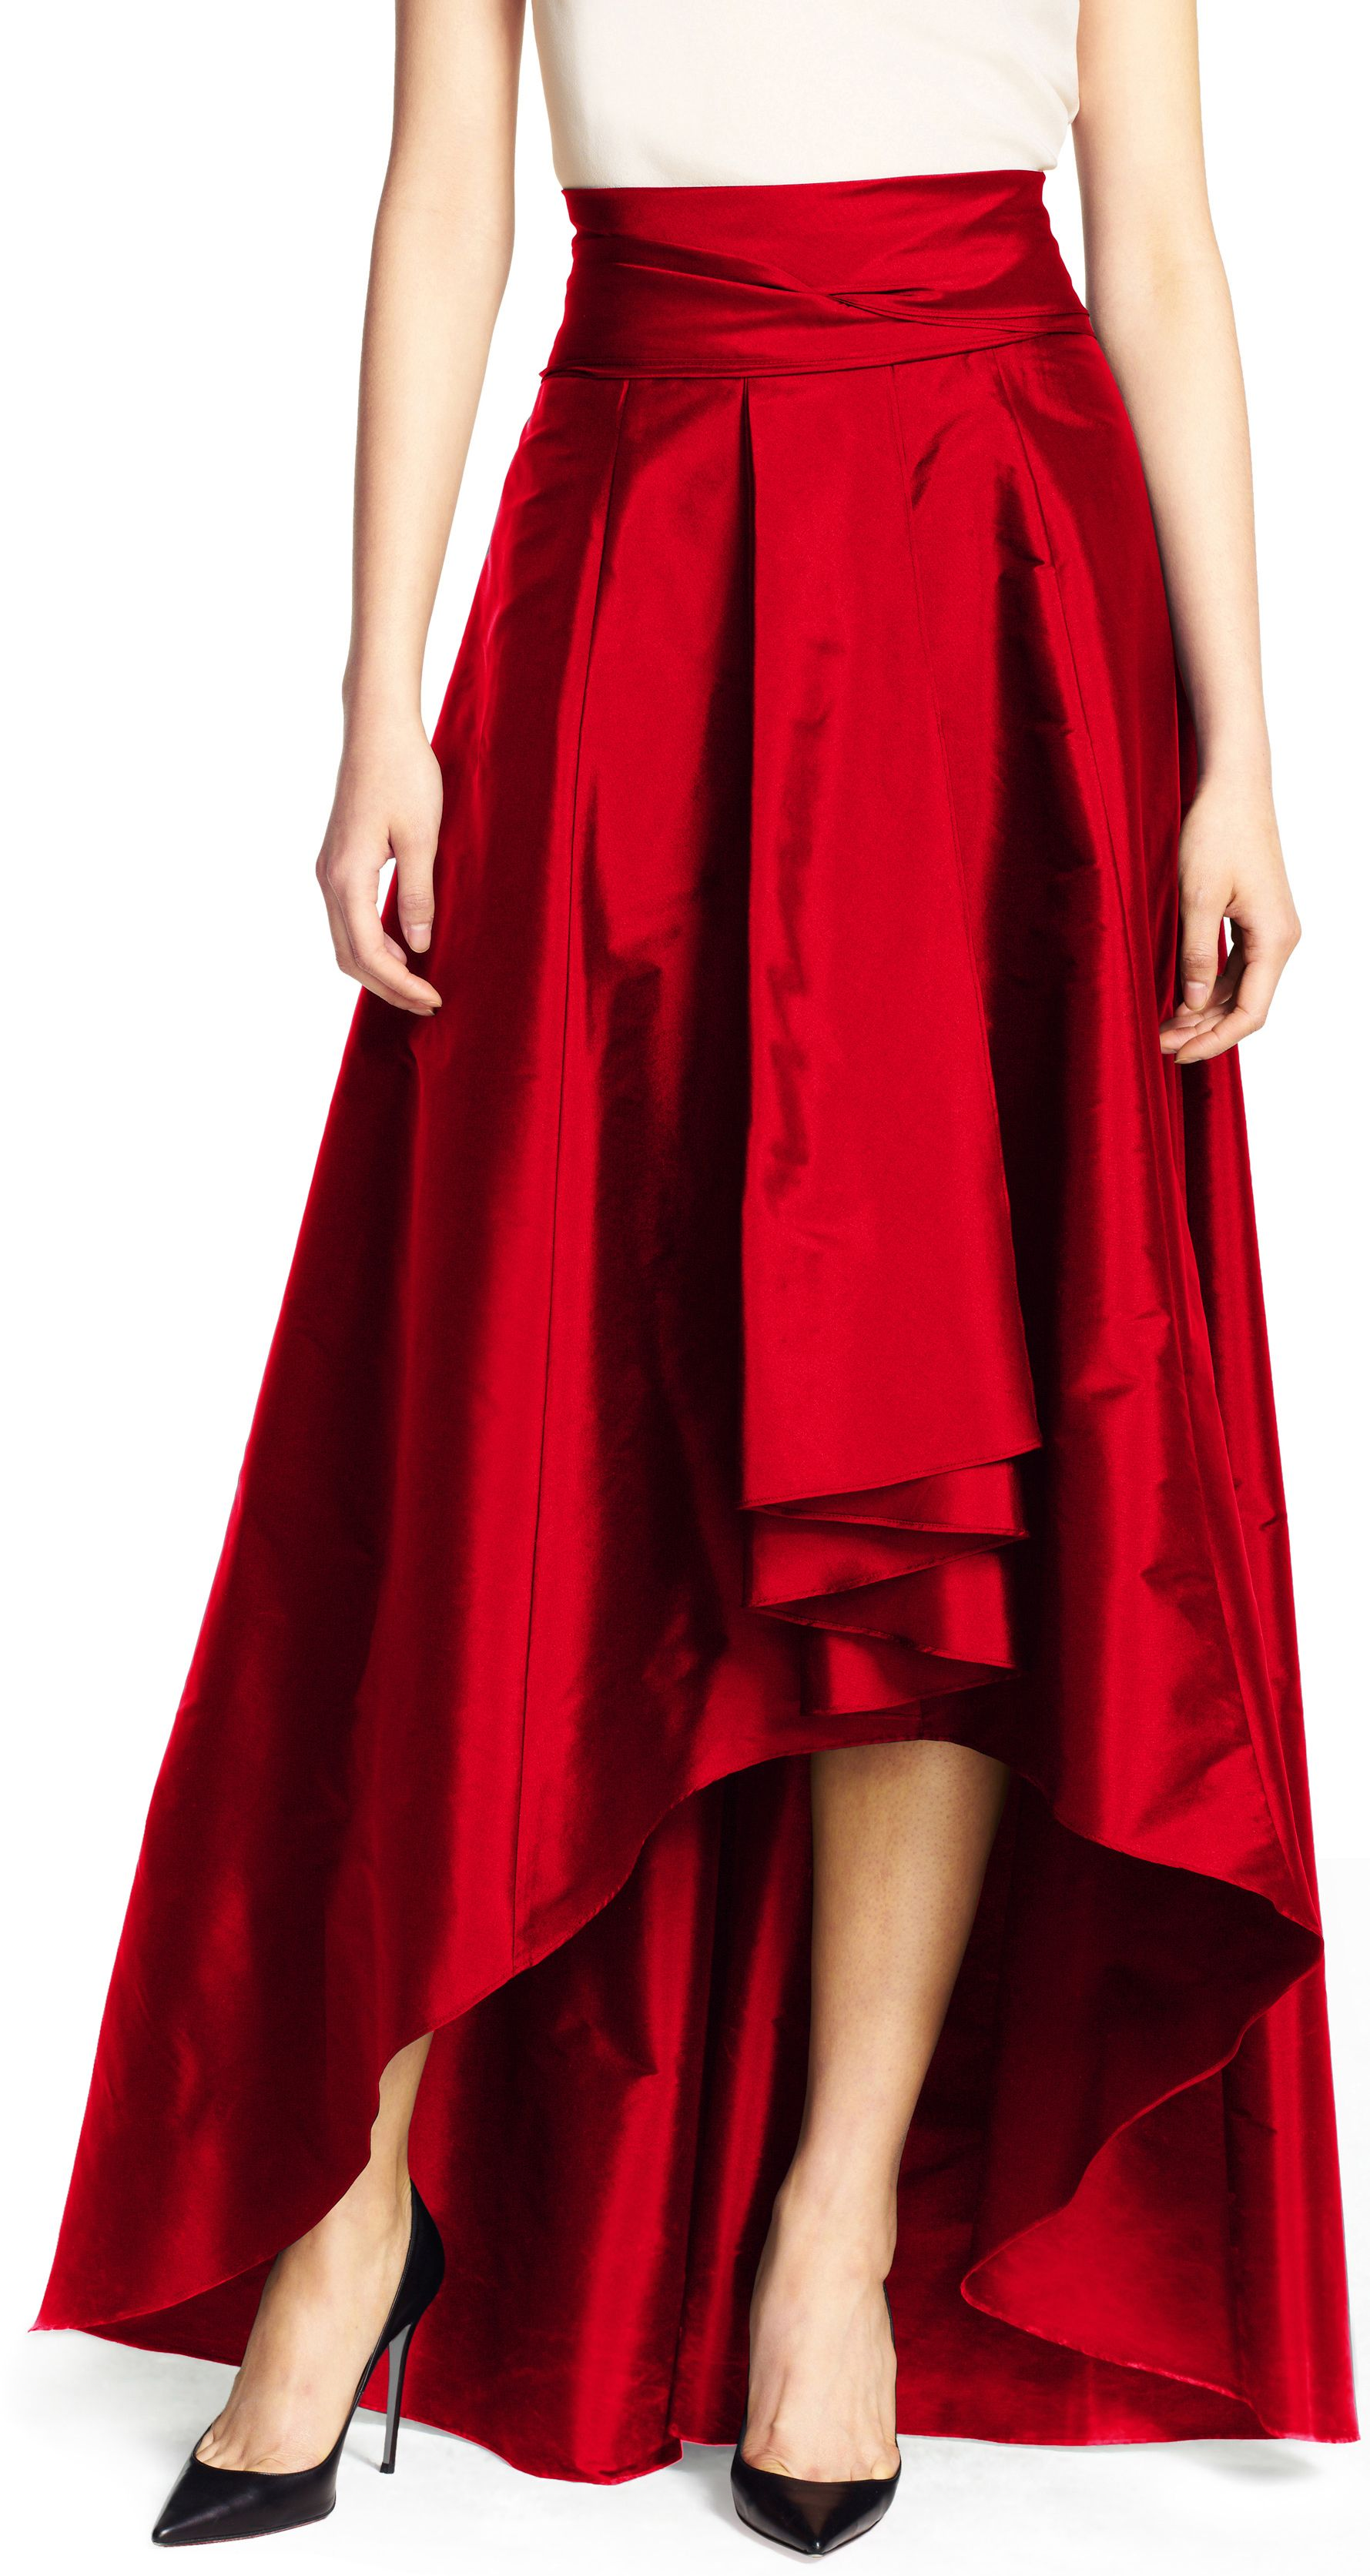 High low ball skirt | Ball skirt, Adrianna papell and High low